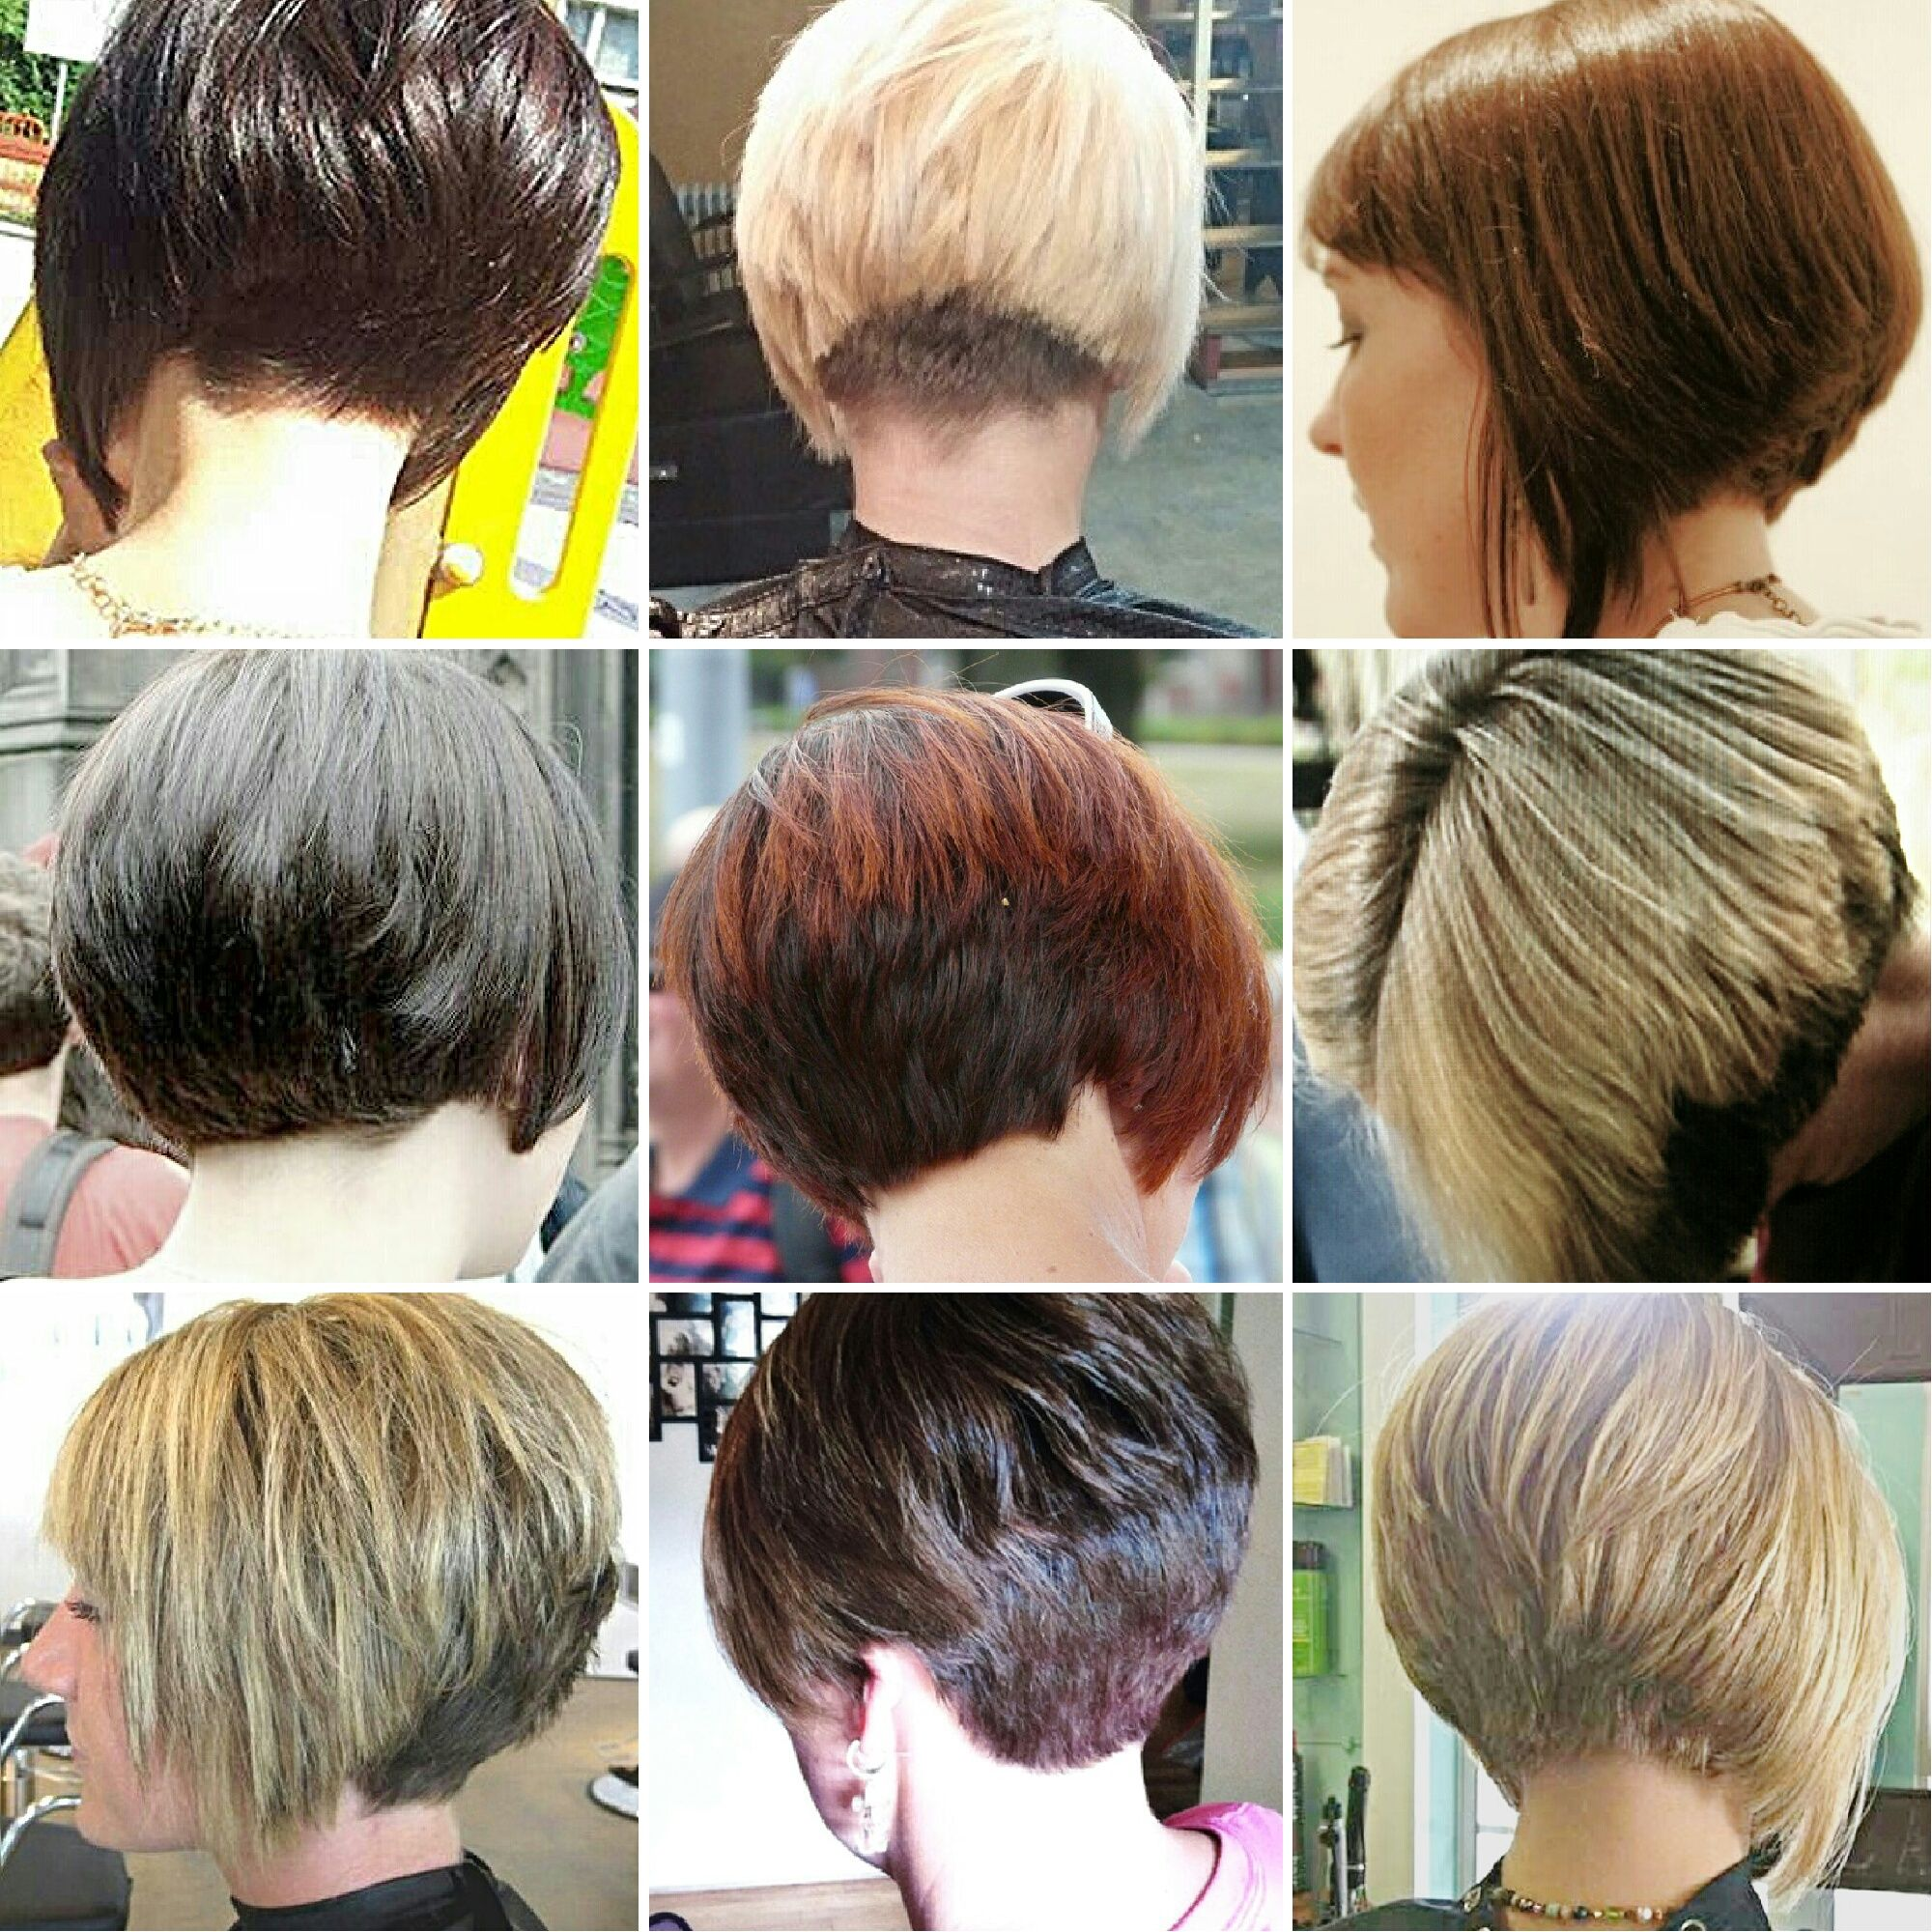 another collage of short/bobbed hairstyles with stacked or buzzed